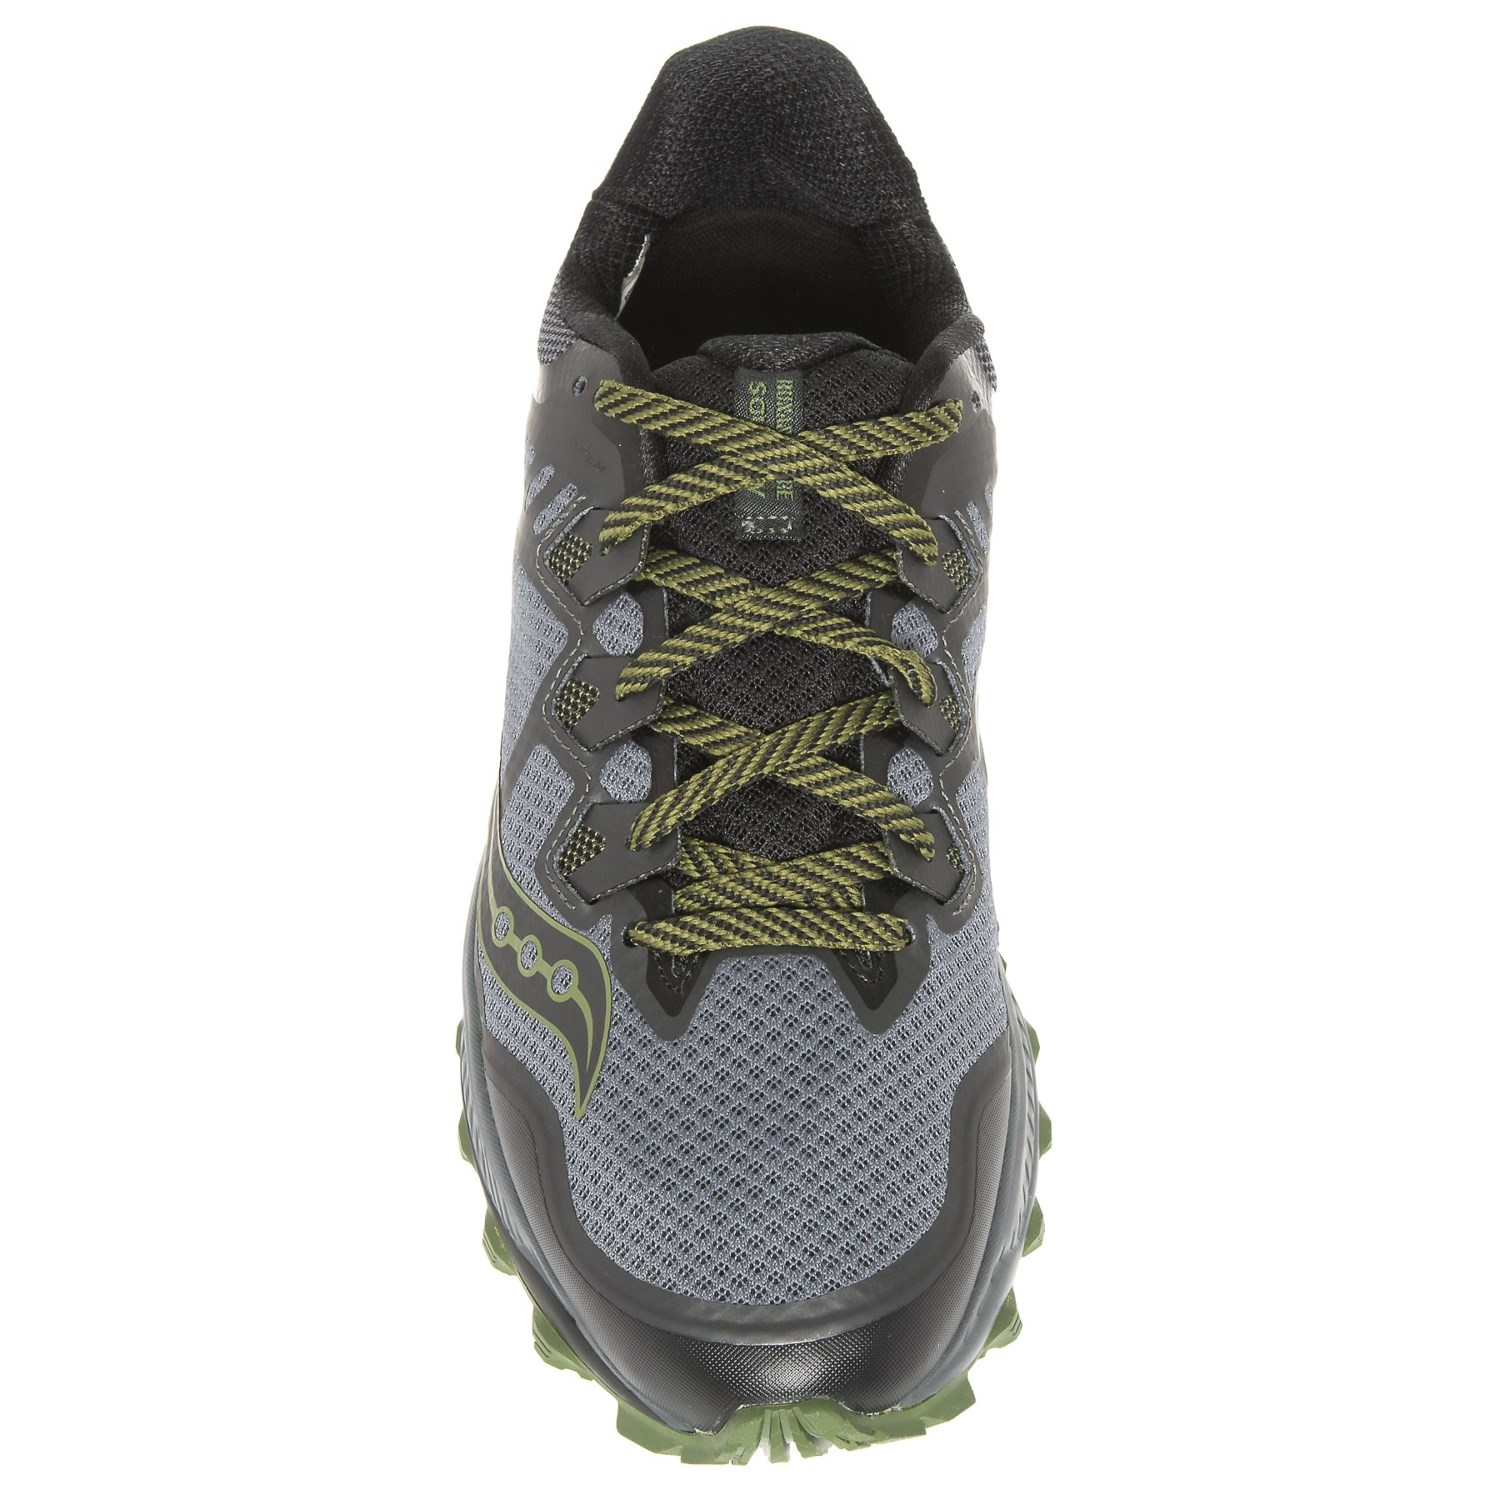 e15931cf758 Saucony Peregrine 8 Trail Running Shoes (For Men) - Save 33%